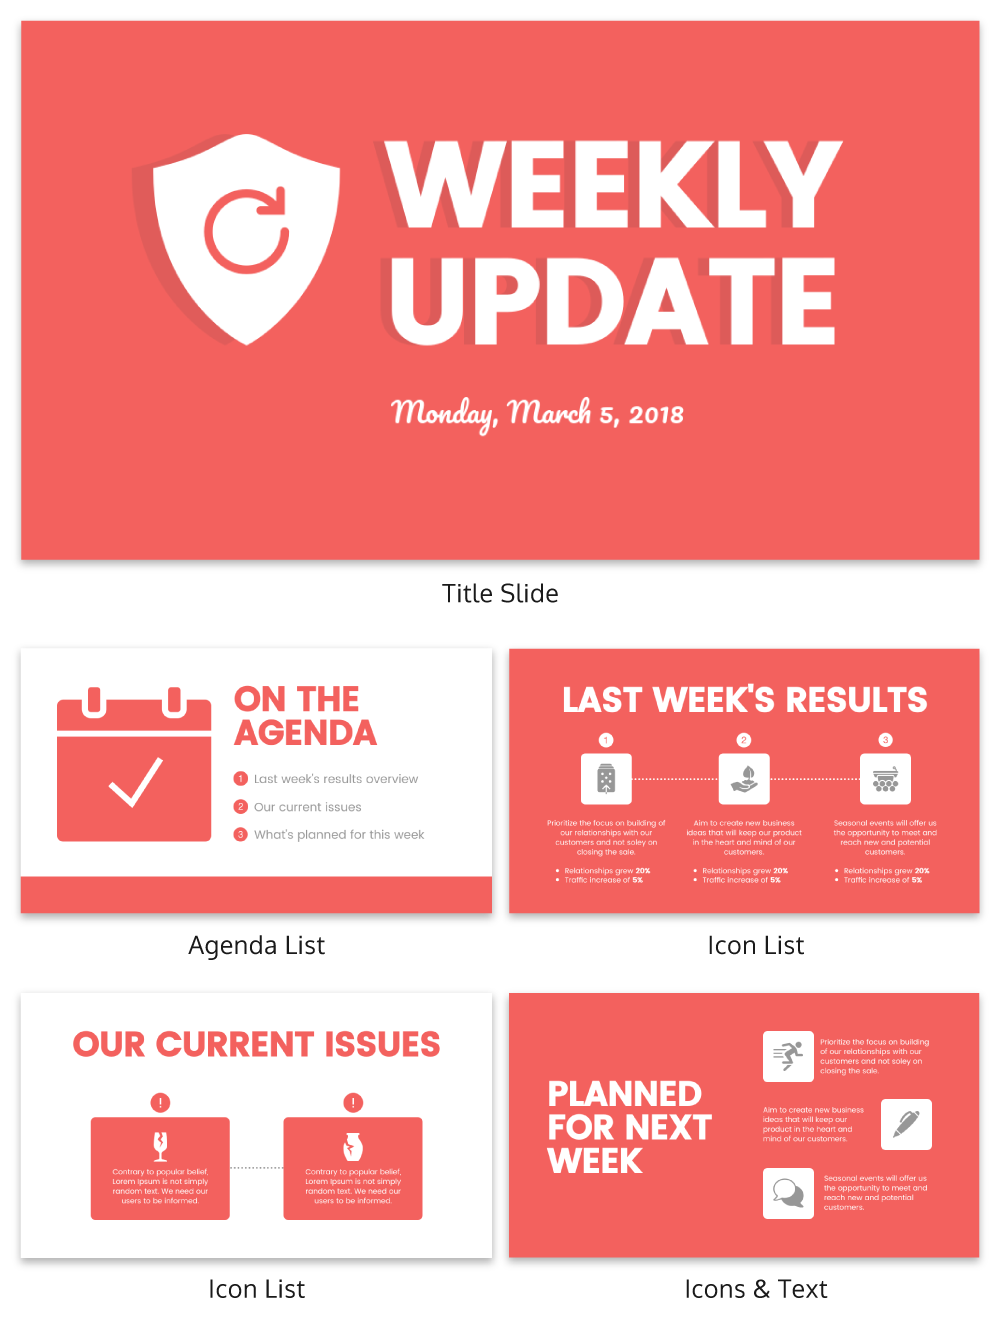 Weekly Update Business Presentation Template